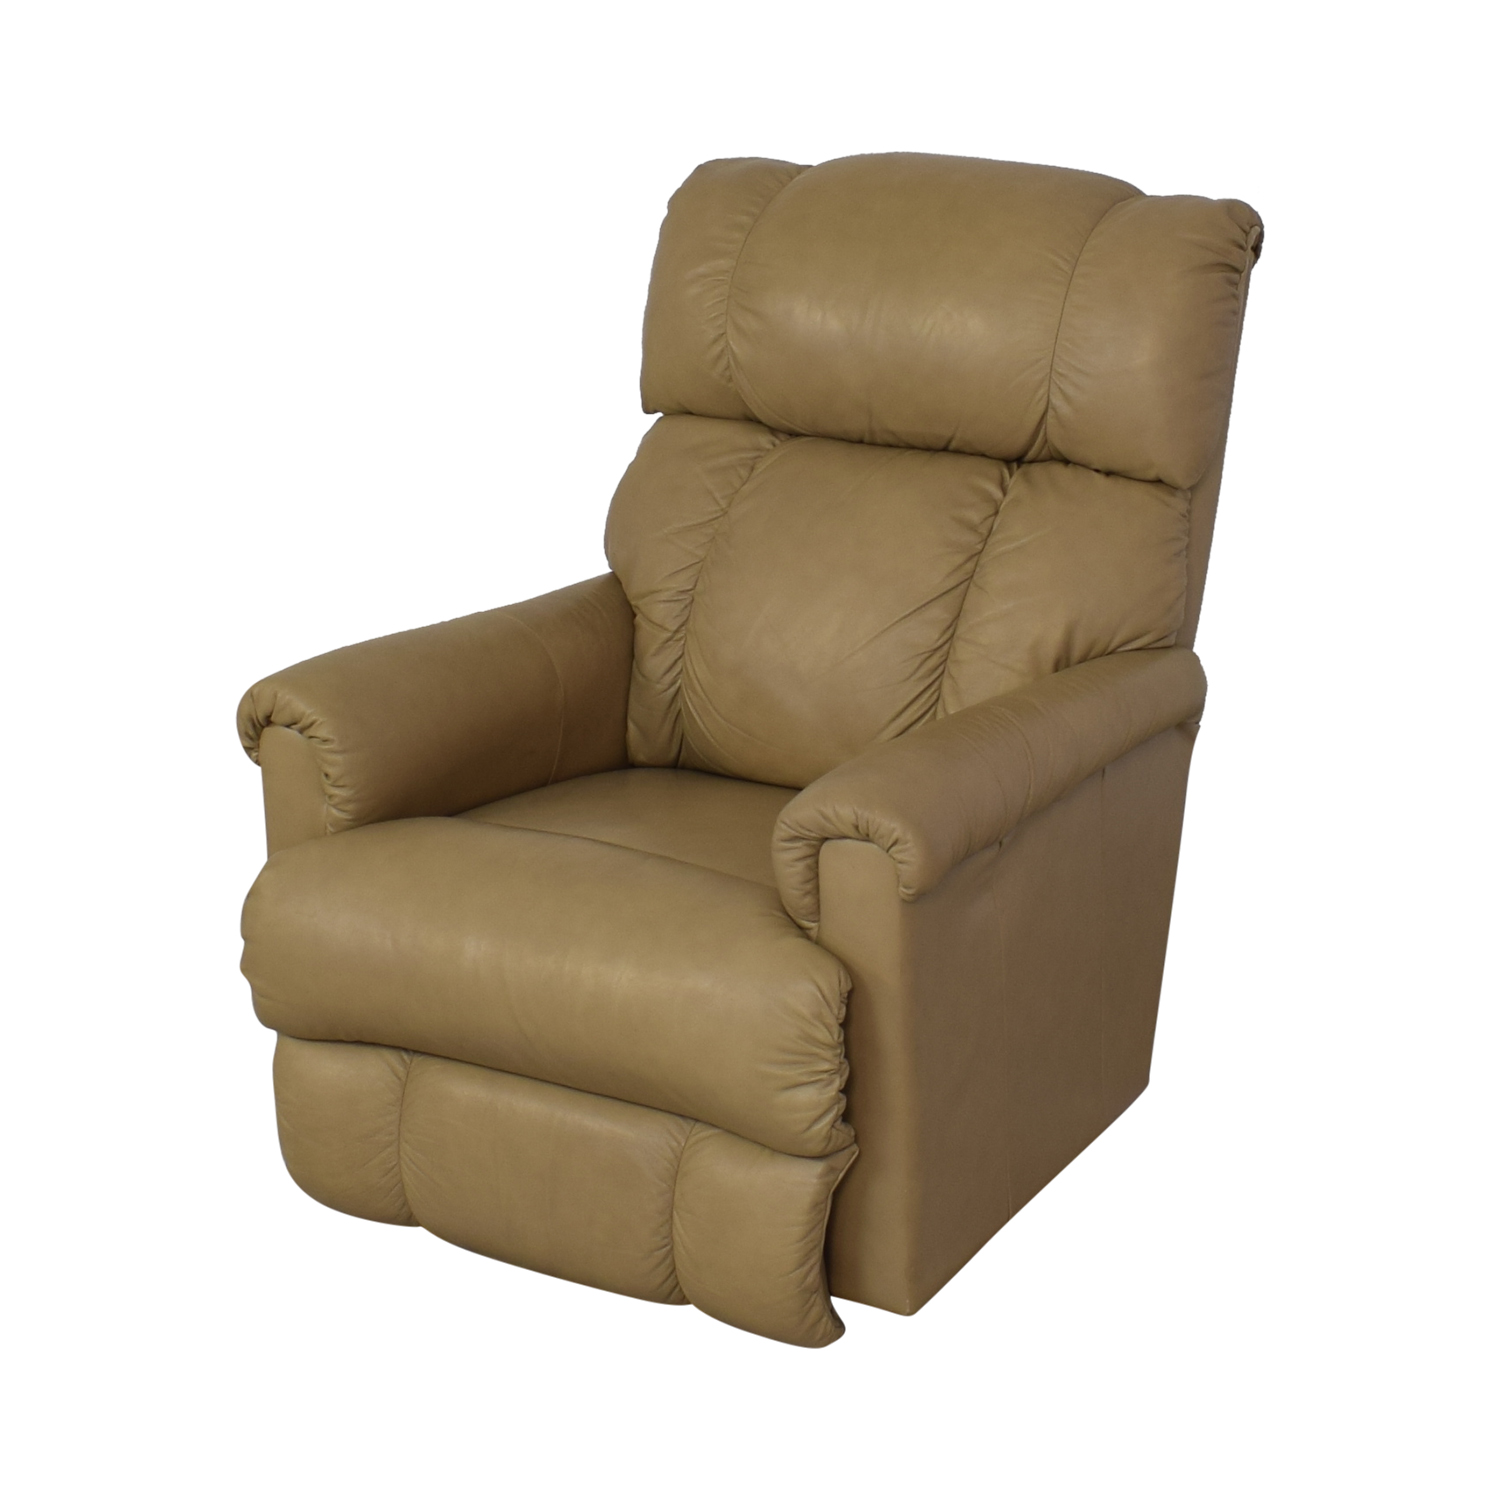 La-Z-Boy La-Z-Boy Recliner used